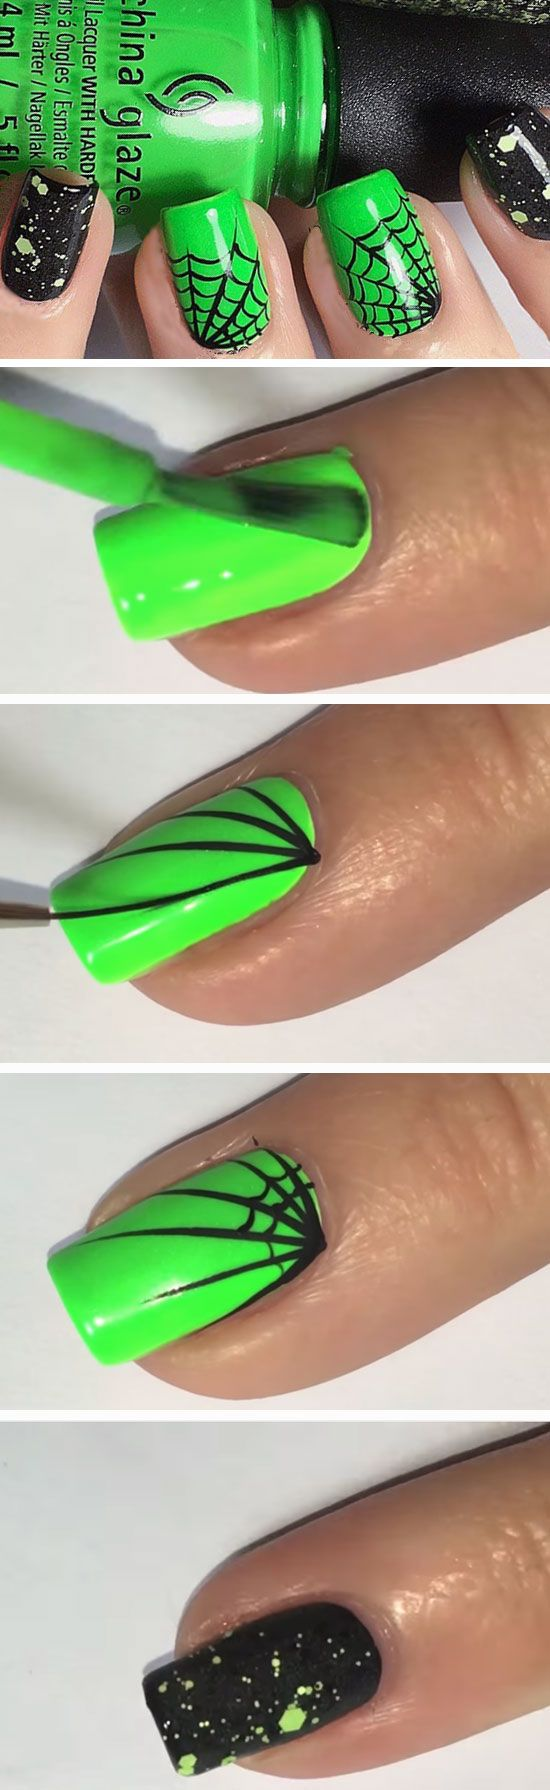 1278 best Art of Nails - Halloween images on Pinterest | Nail ...